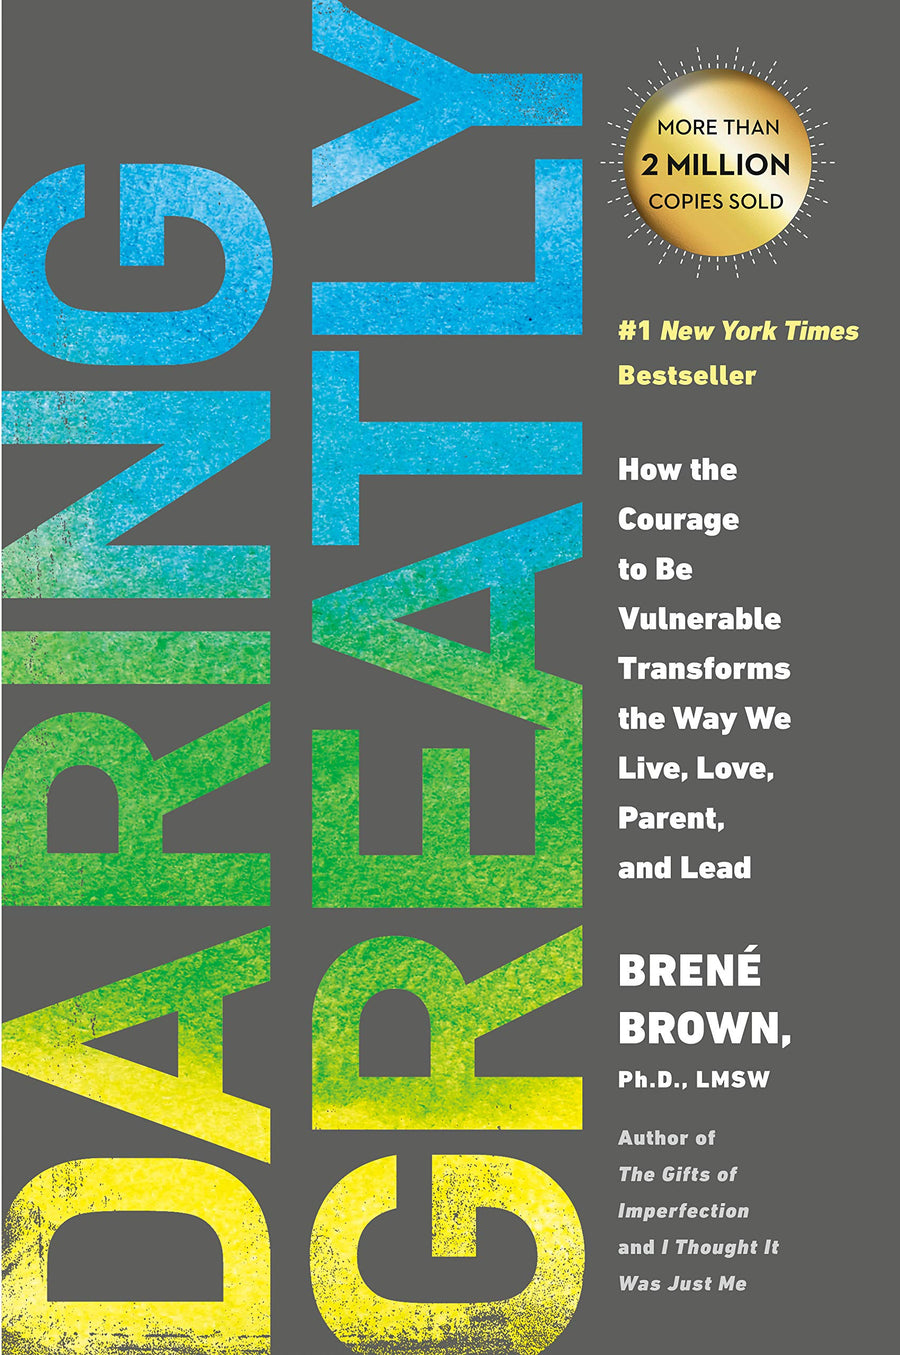 Daring Greatly: How the Courage to Be Vulnerable Transforms the Way We Live, Love, Parent, and Lead - Leadership Books